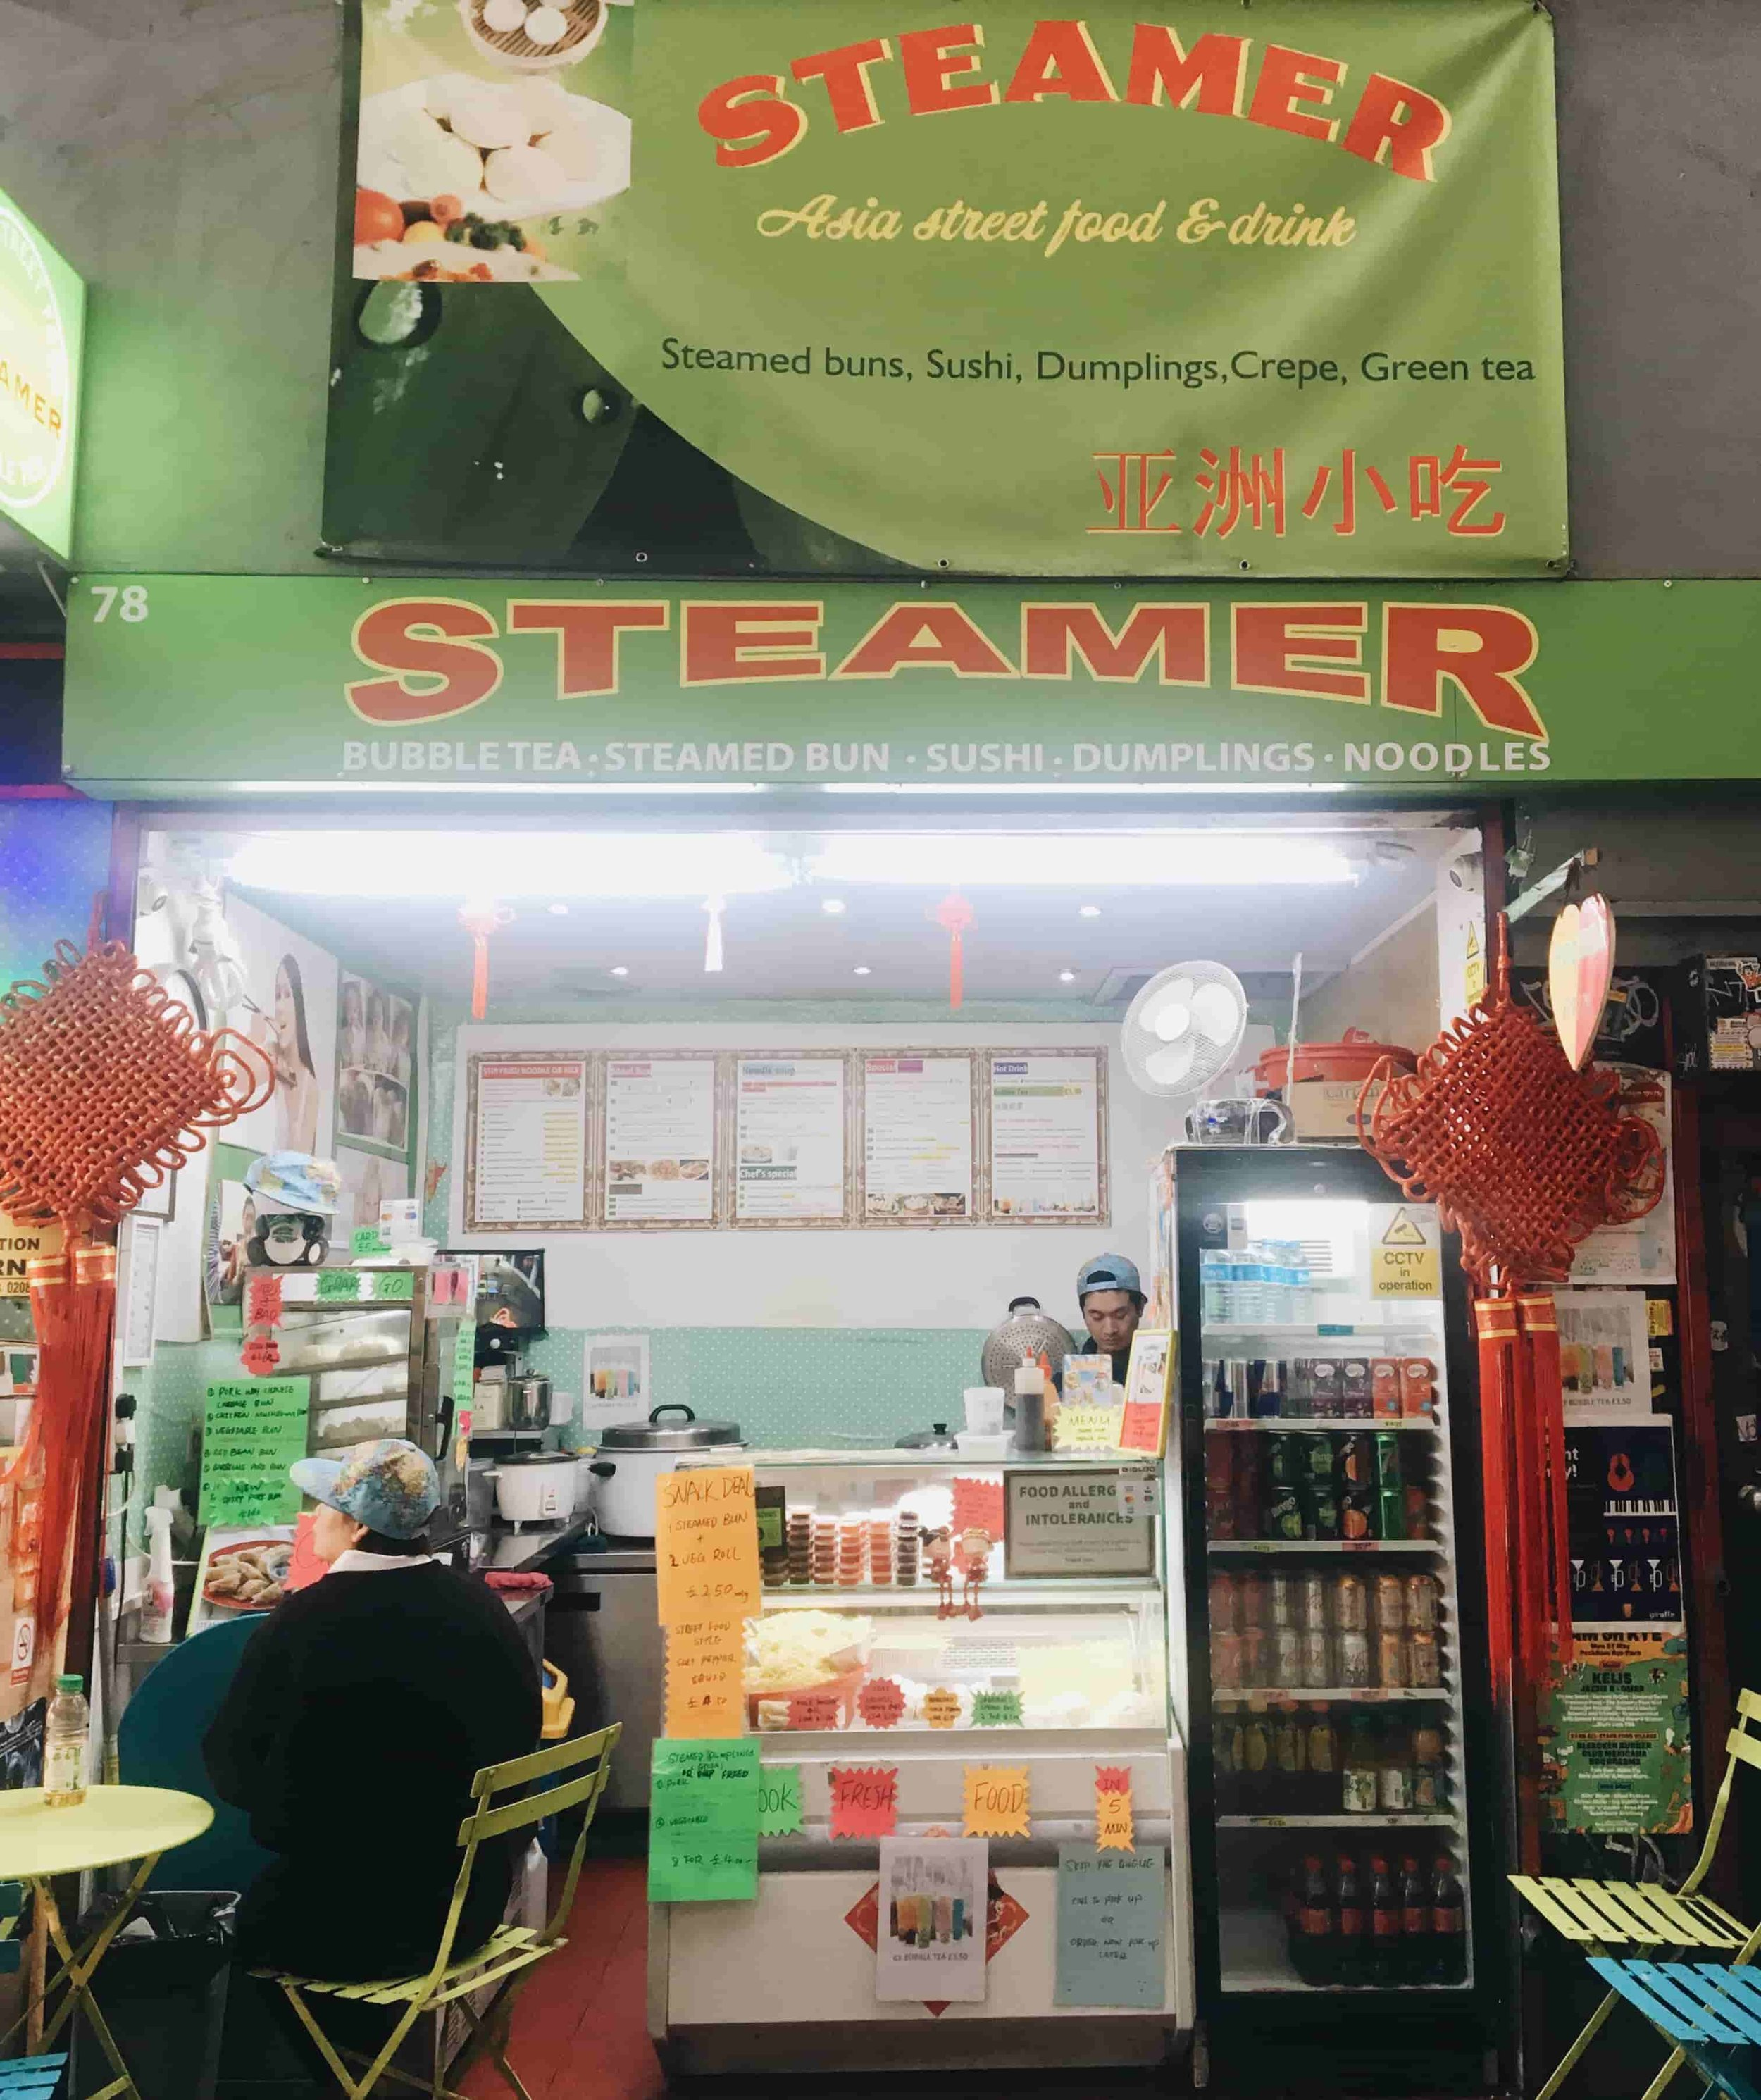 Steamer has moved from Peckham Rye station. Image cred: SouthEast15